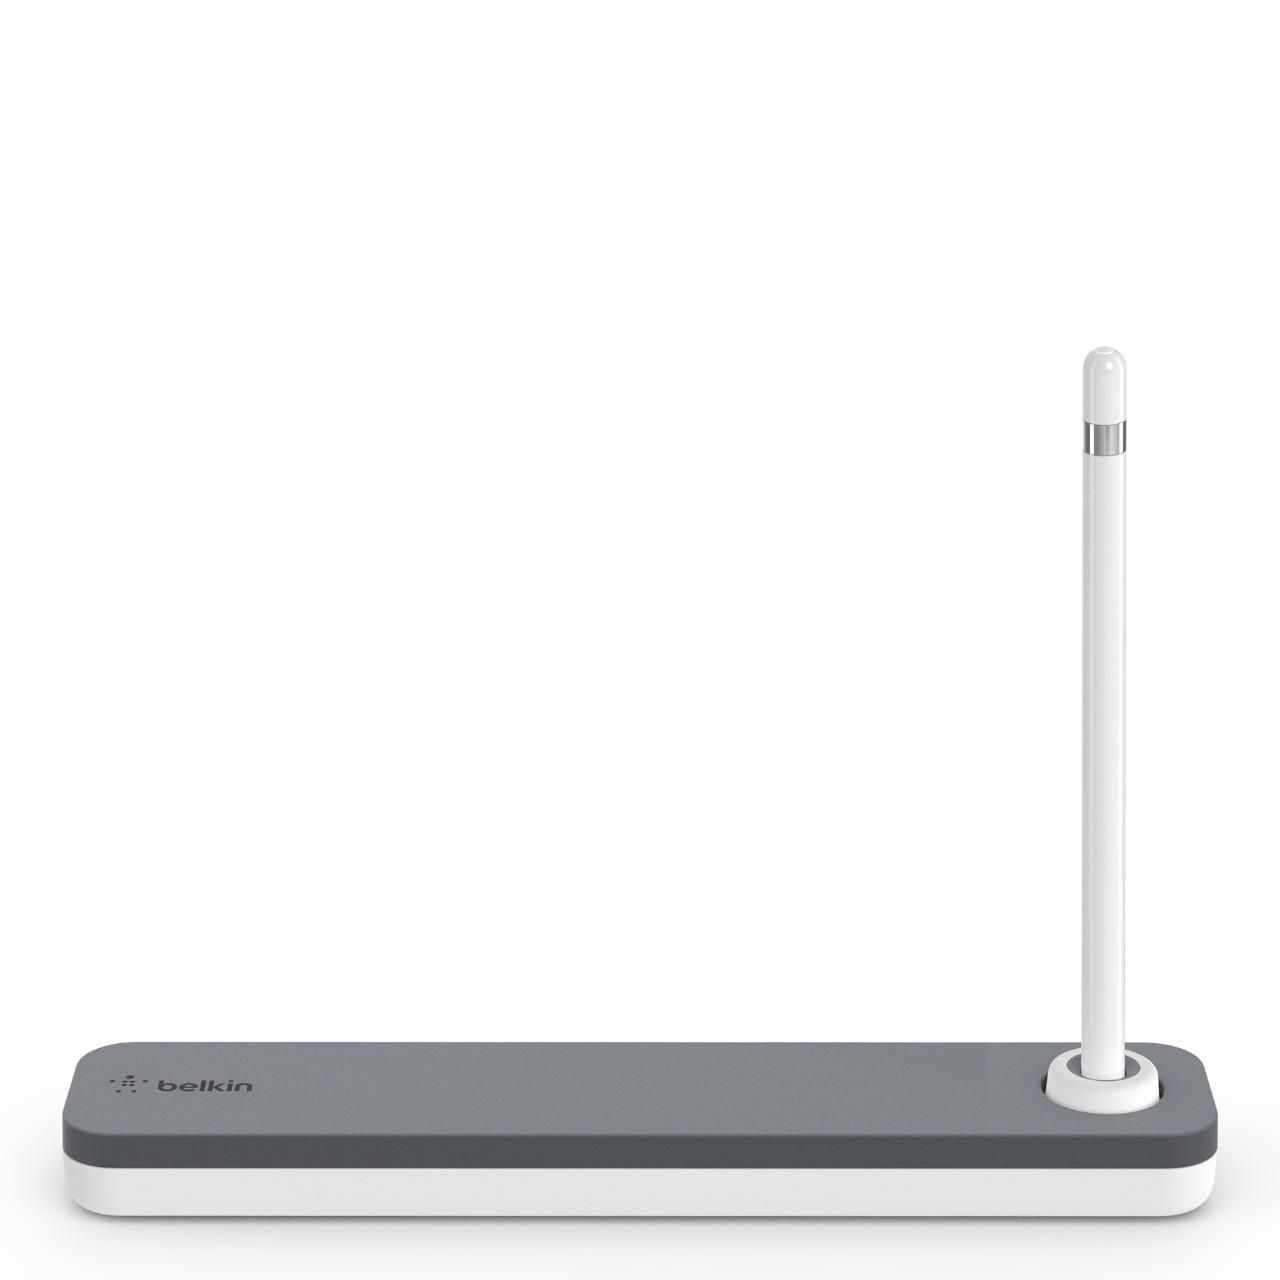 Belkin Case Plus Stand for Apple Pencil White/Grey